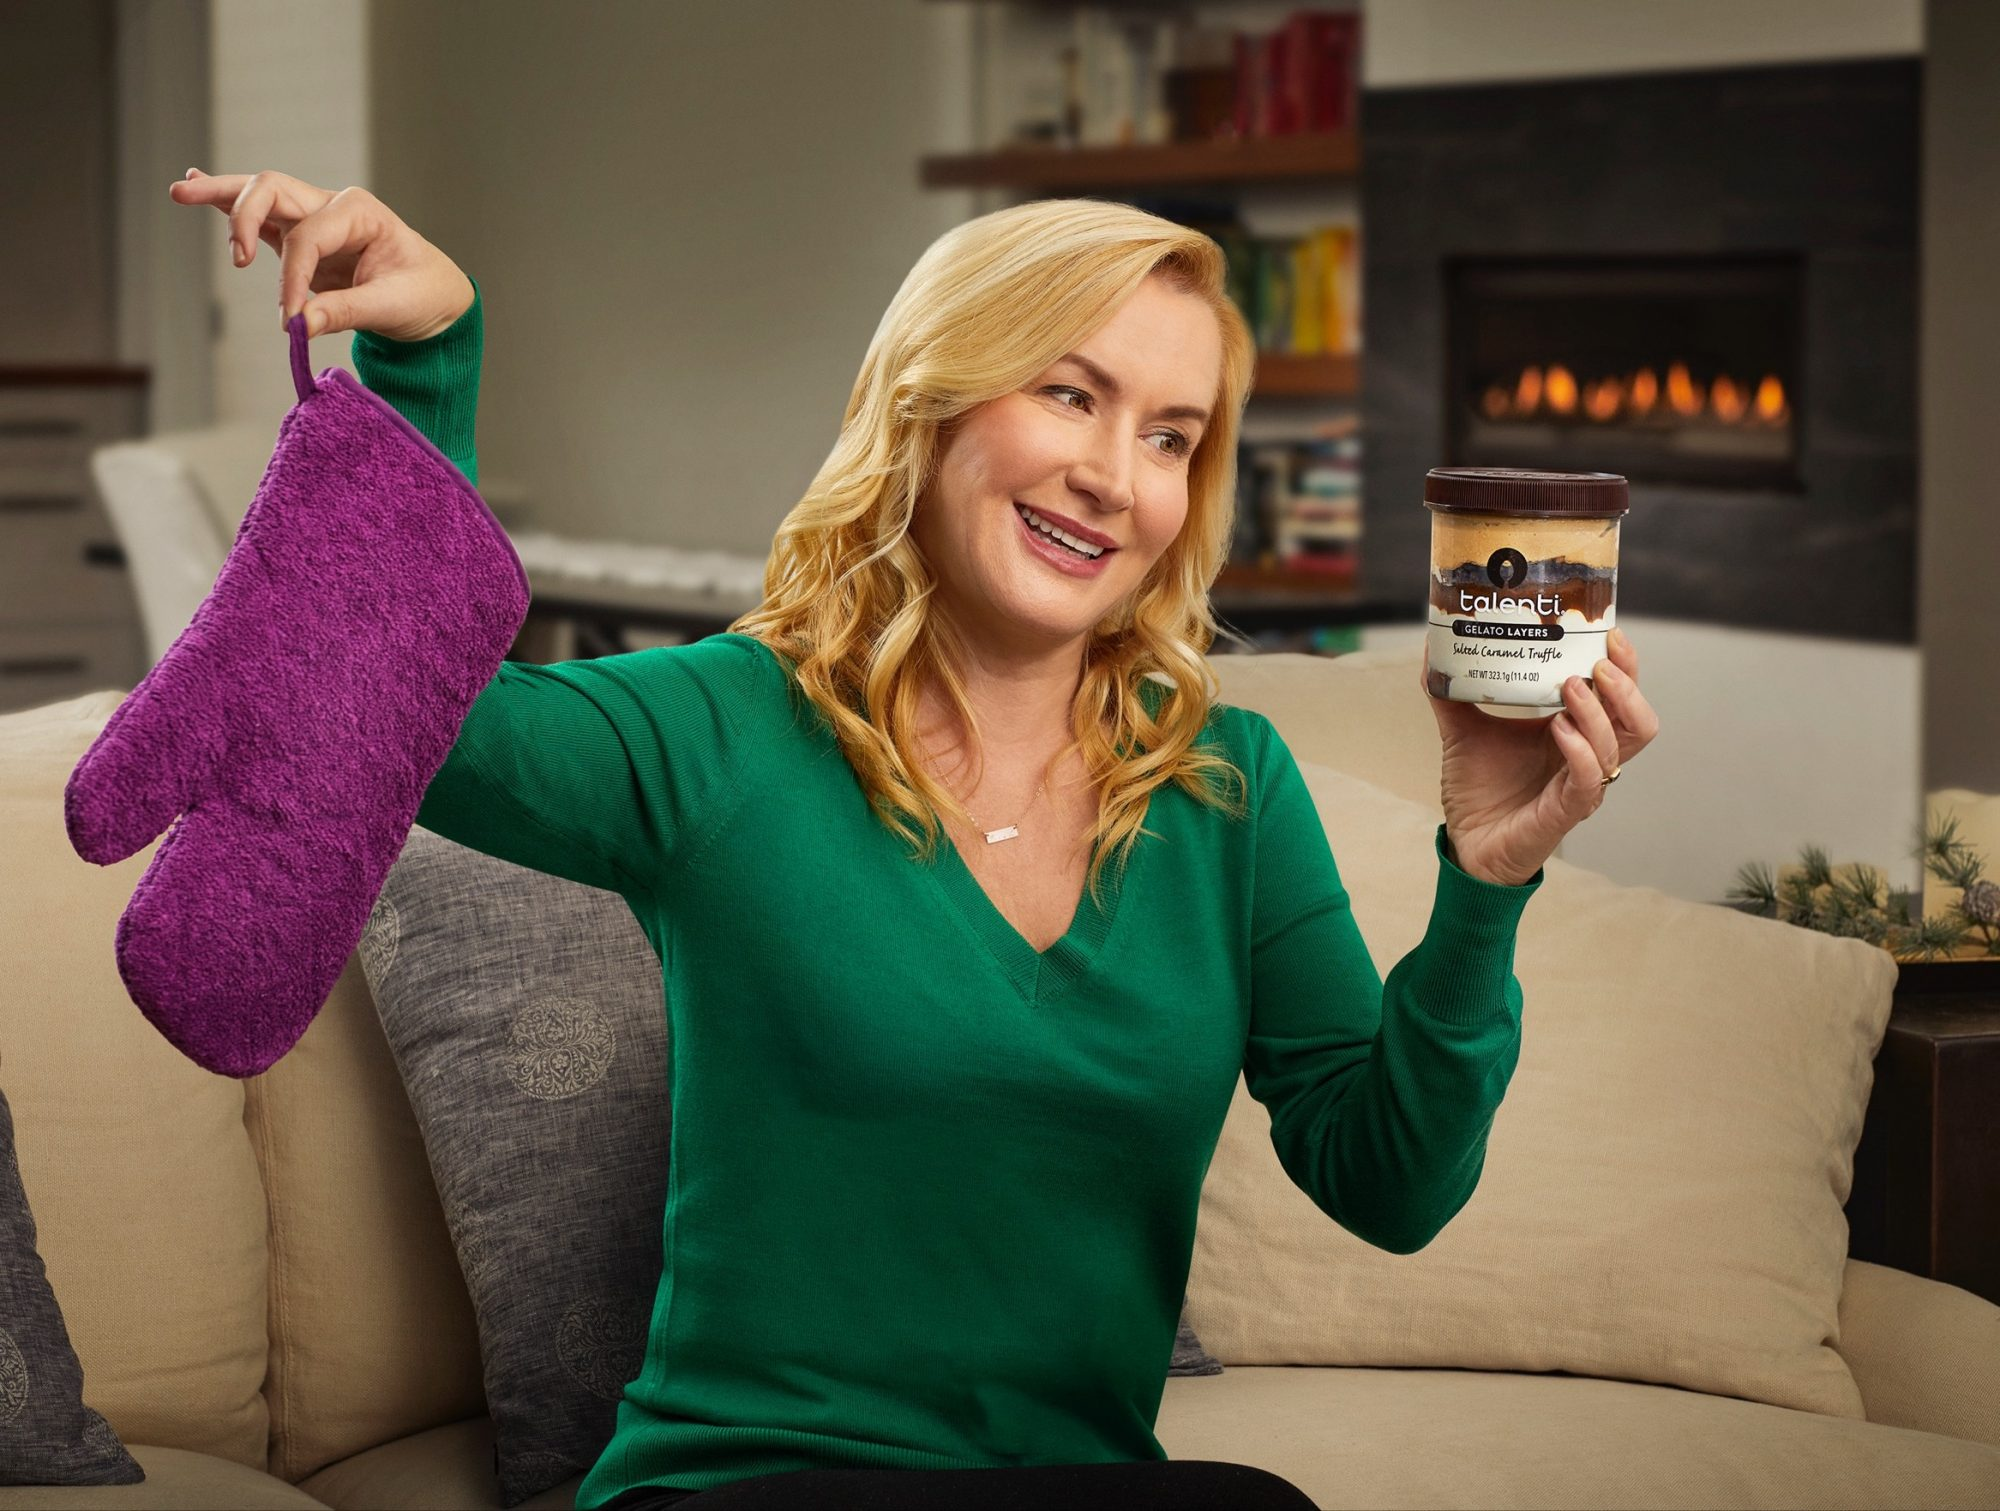 angela is swapping her meh gift for a pint of talenti